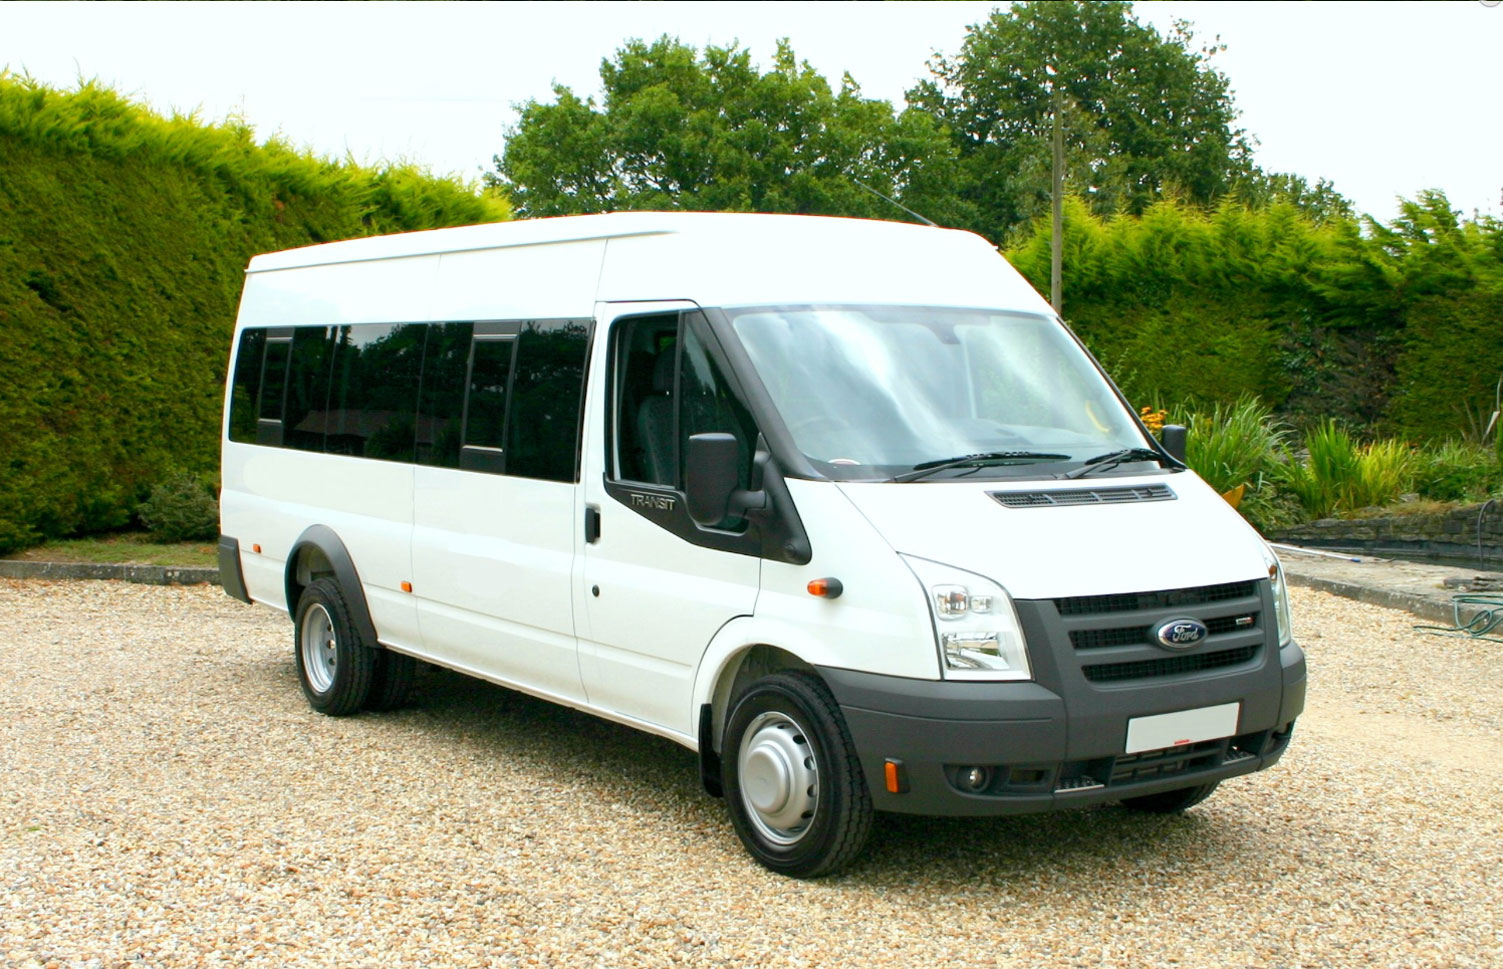 17 seat ford minibus from red kite the uk s leading supplier of minibuses